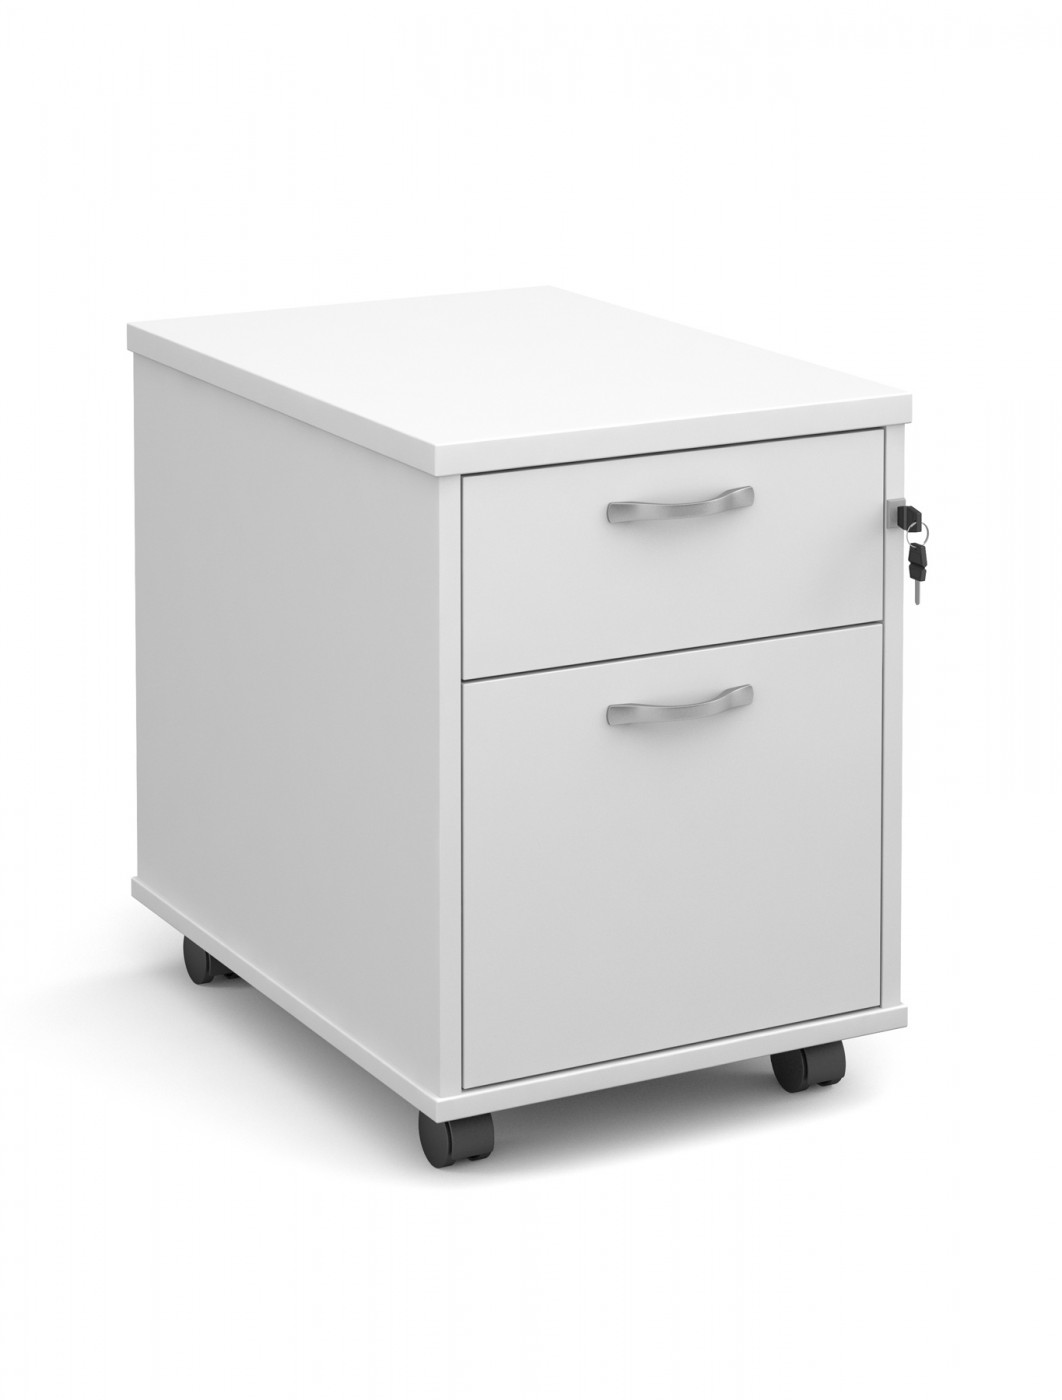 data dams 2 drawer mobile pedestal r2m with silver handles two drawer